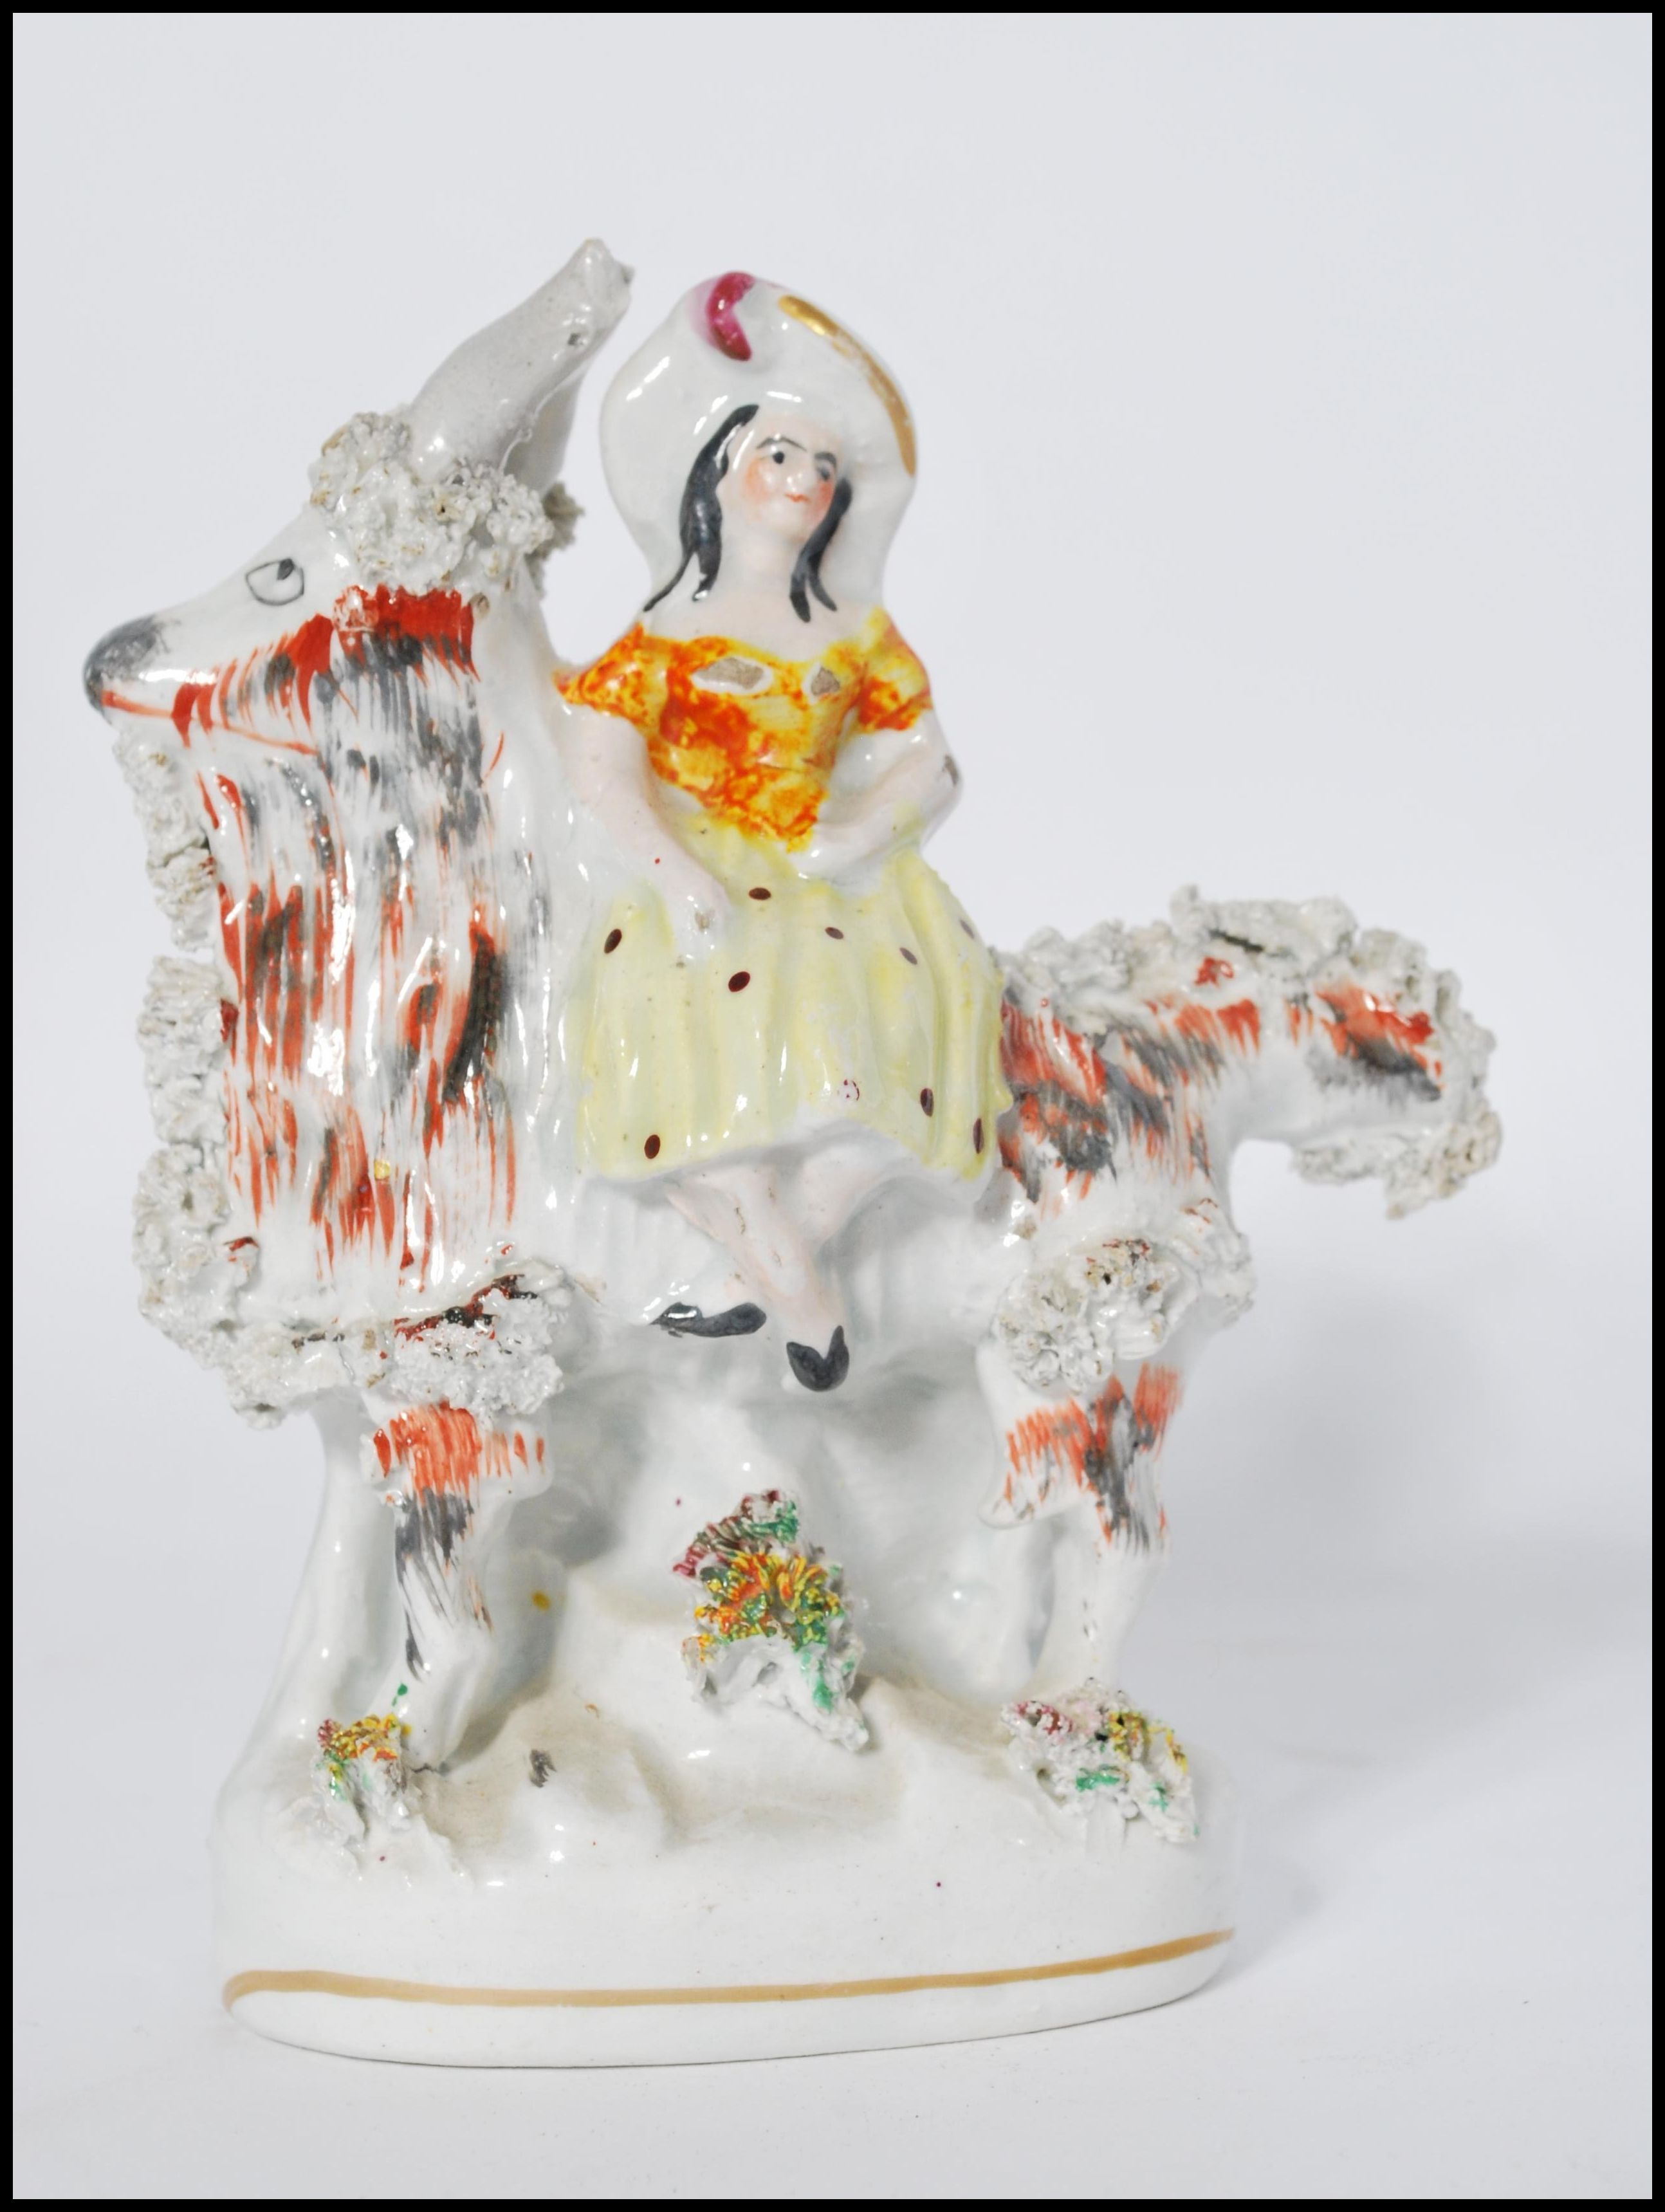 Lot 31 - A Victorian Staffordshire flat back ceramic figurine of a goat and lady. Together with another